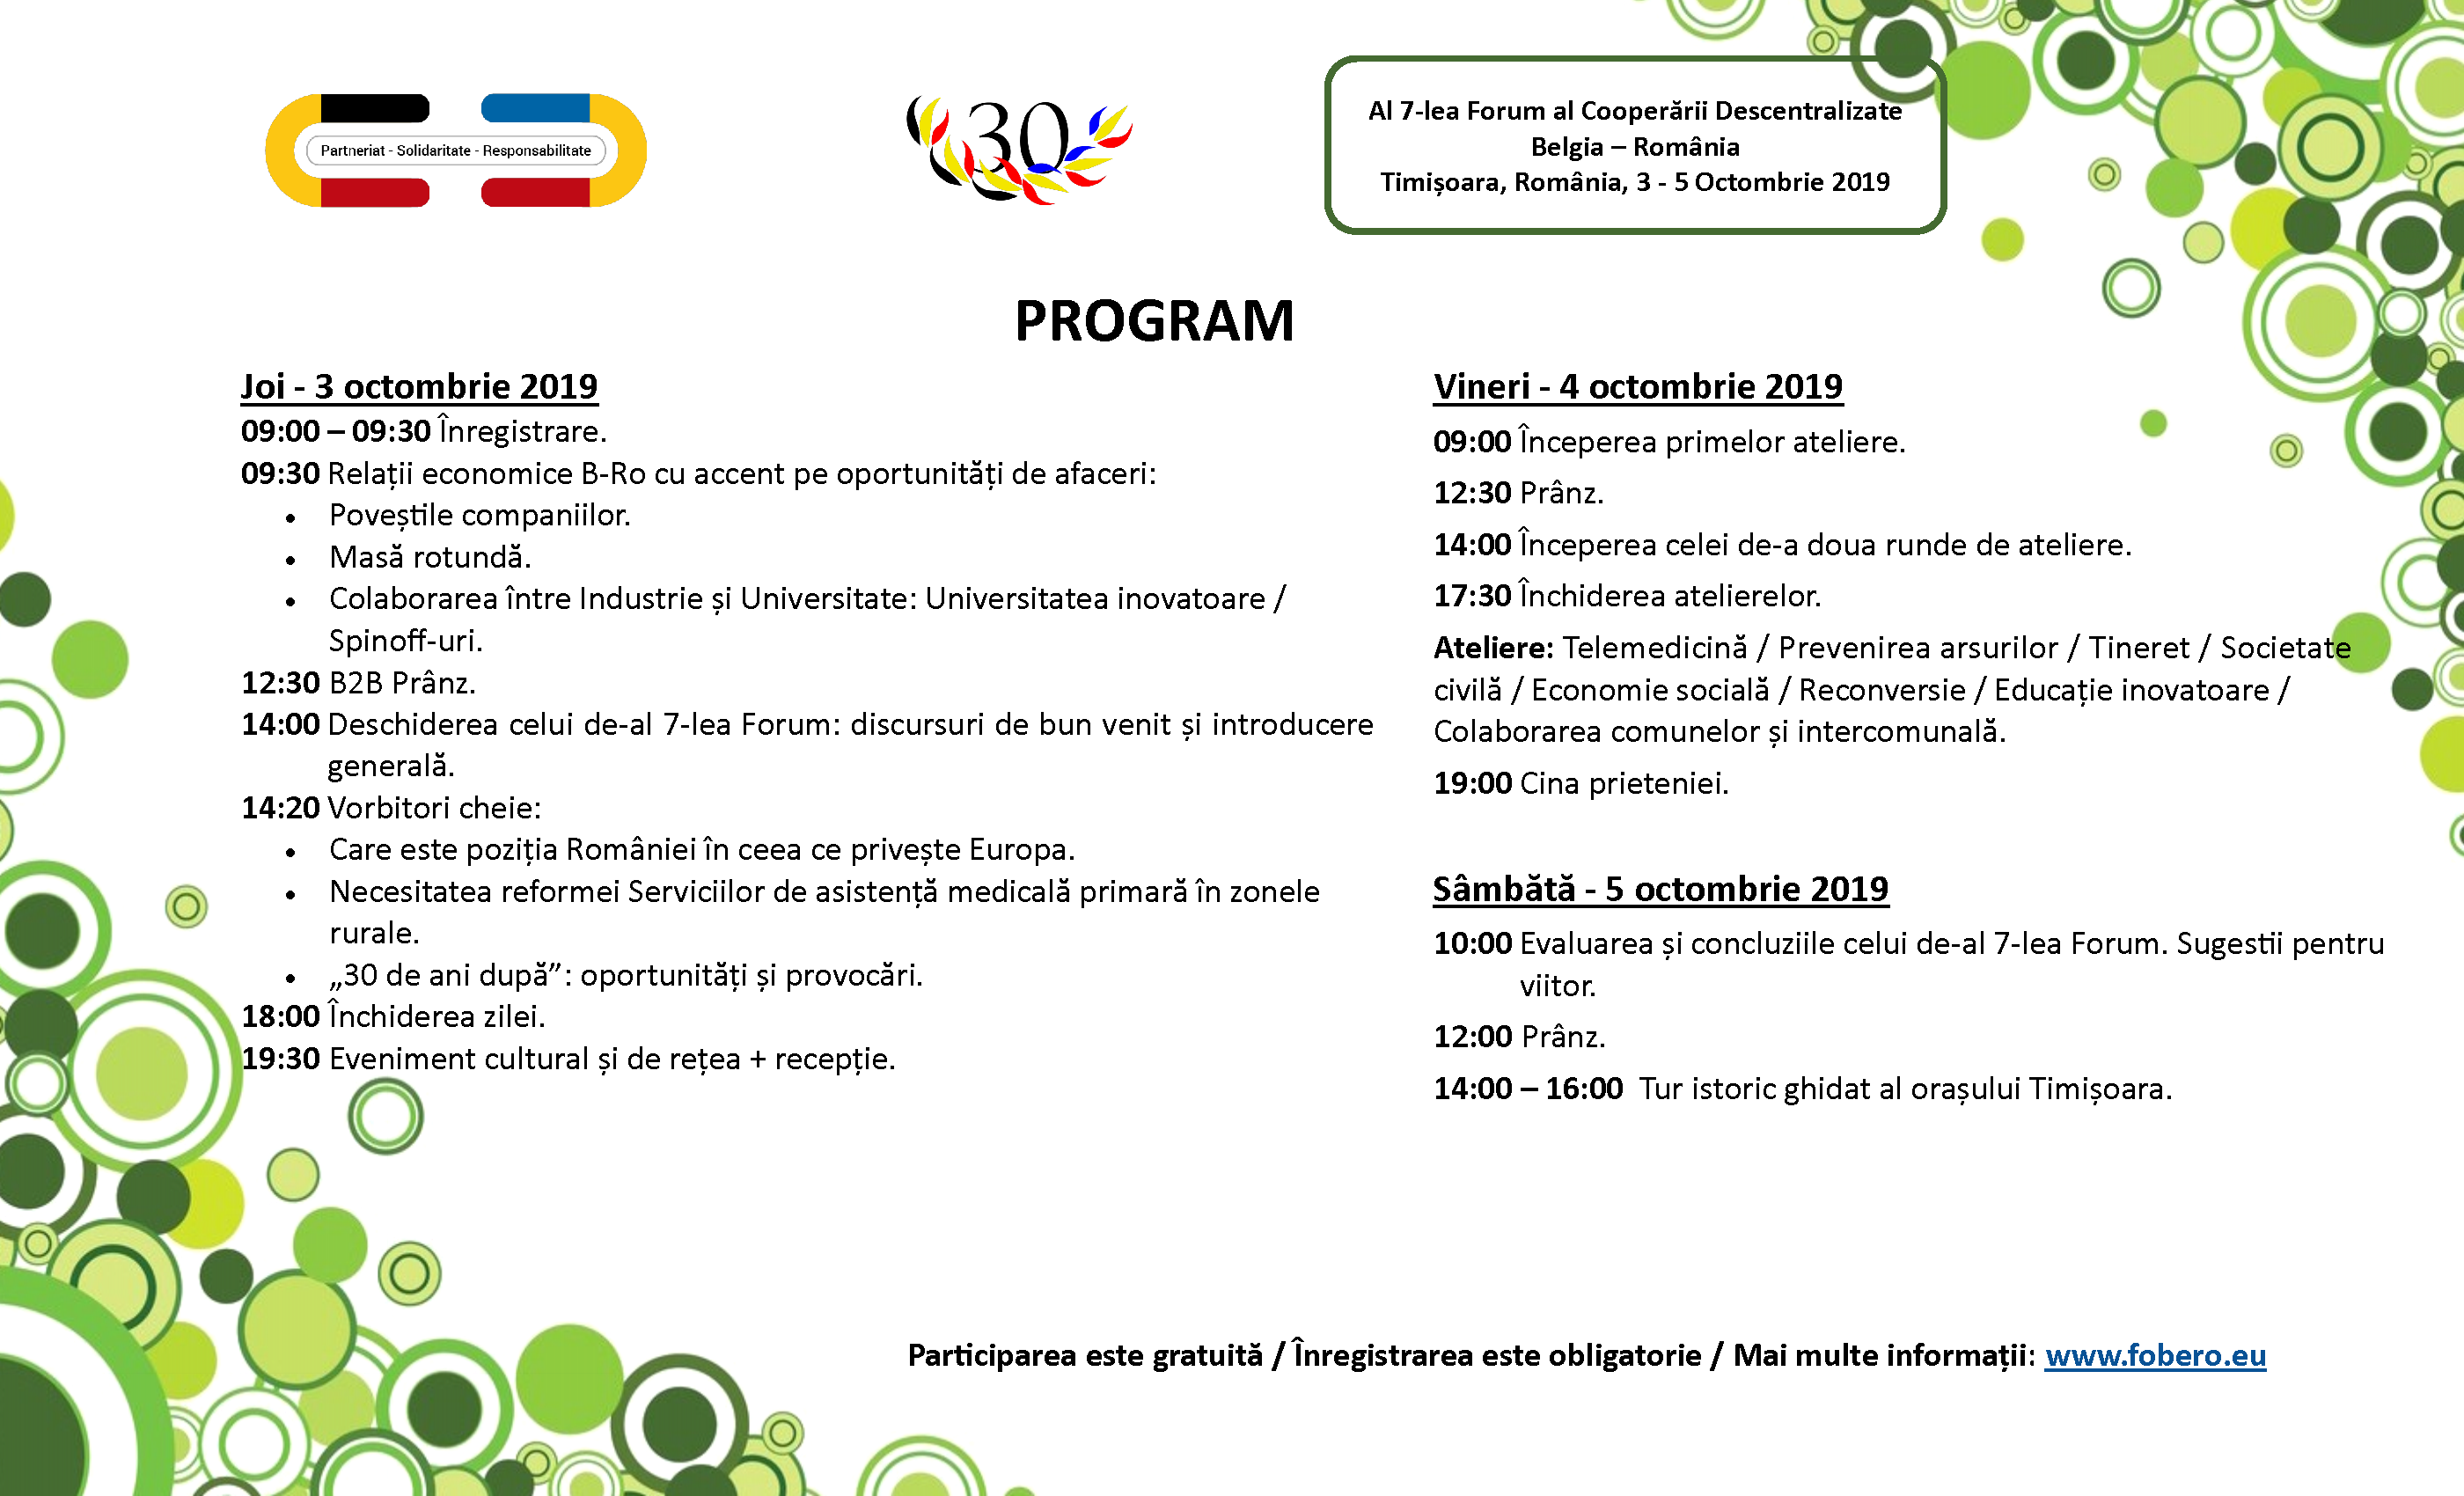 The_Open_Network_Al_7-lea_Forum_al_Cooperarii_Descentralizate_Belgia_Romania_program